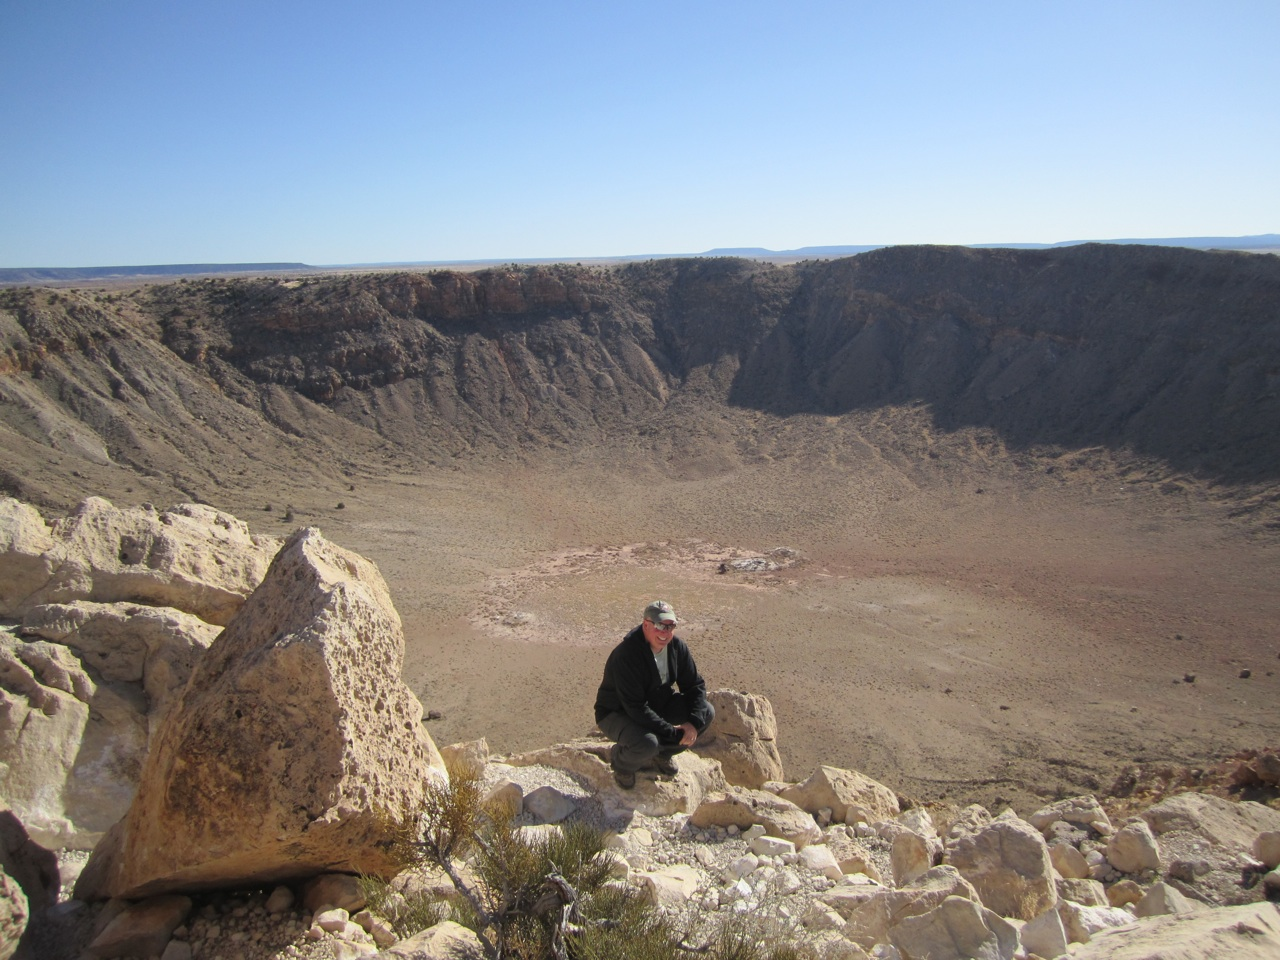 David And The Meteor Crater